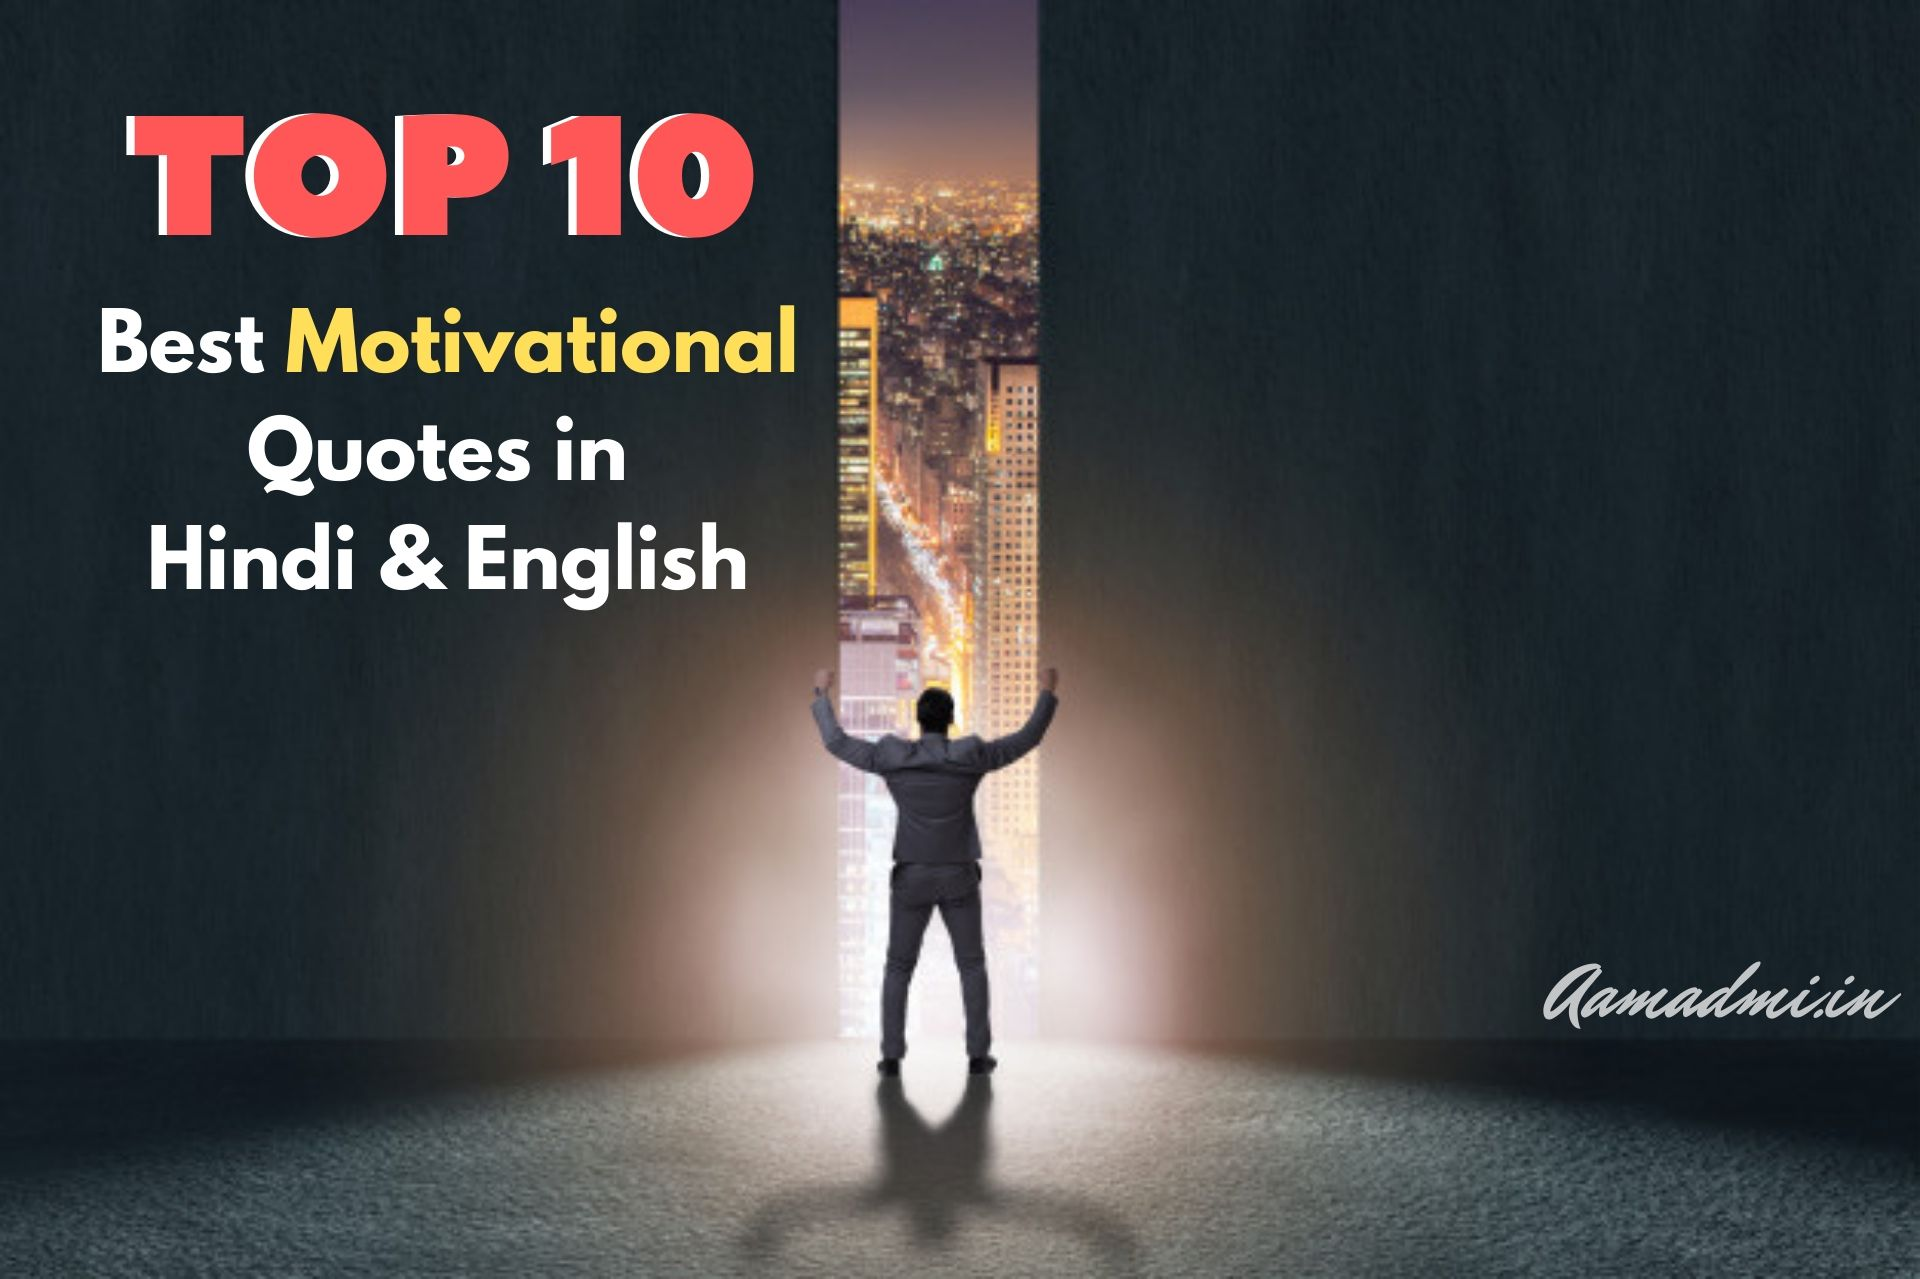 Top 20 Best Motivational Quotes in Hindi & English